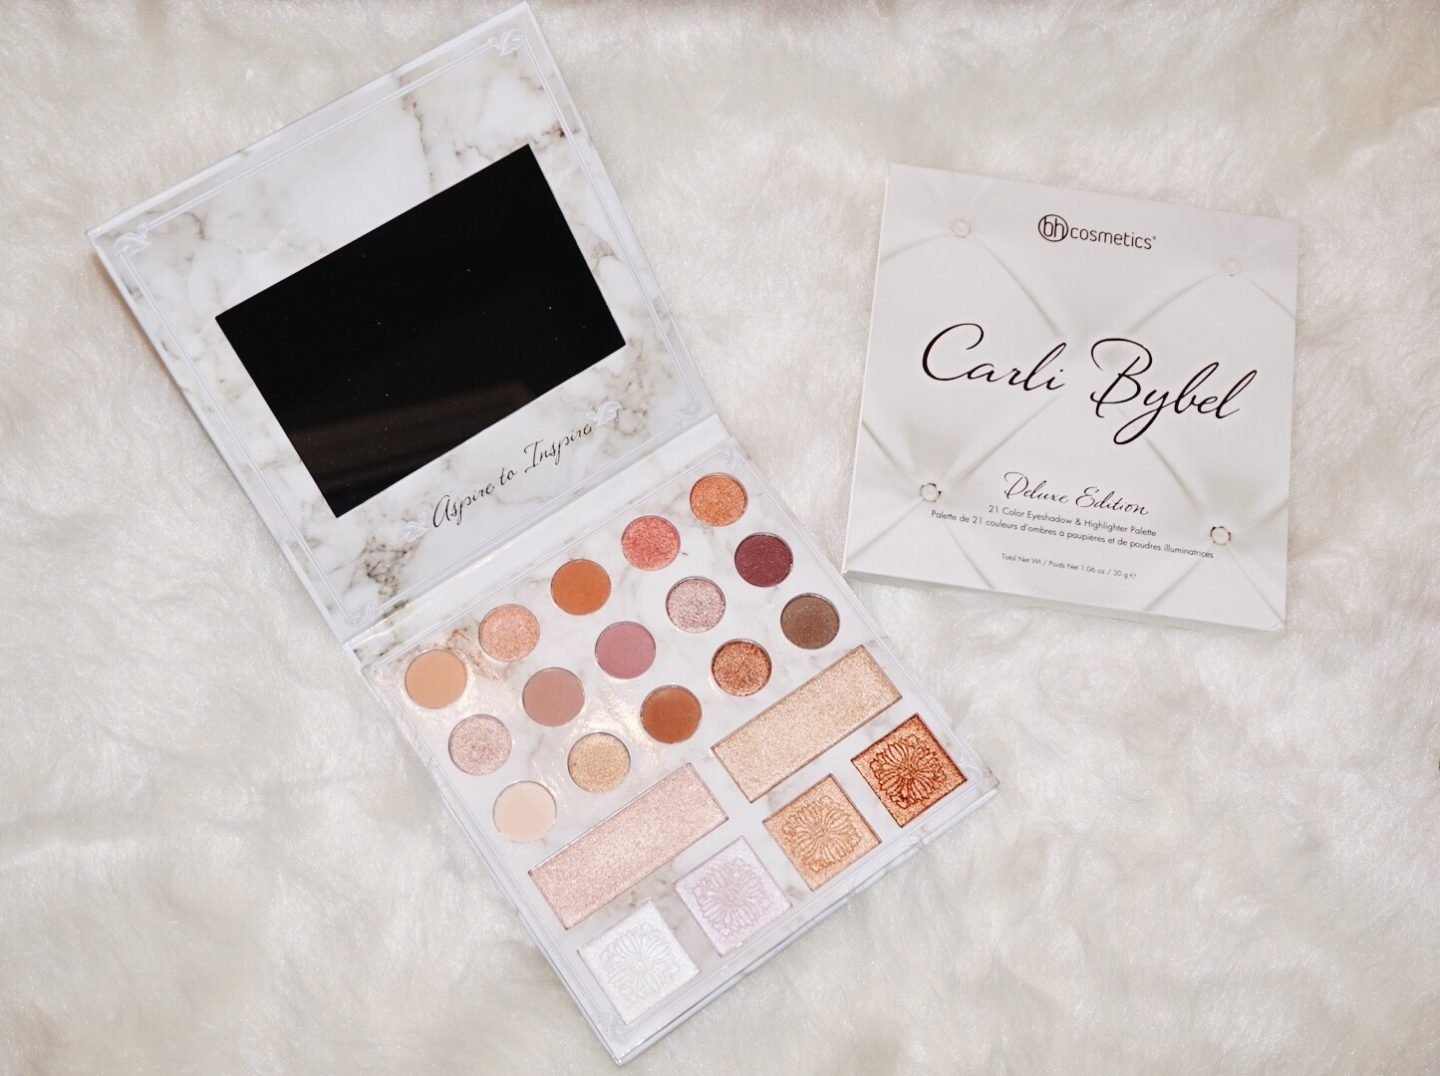 Carli Bybel Deluxe Edition Palette Review & Swatches